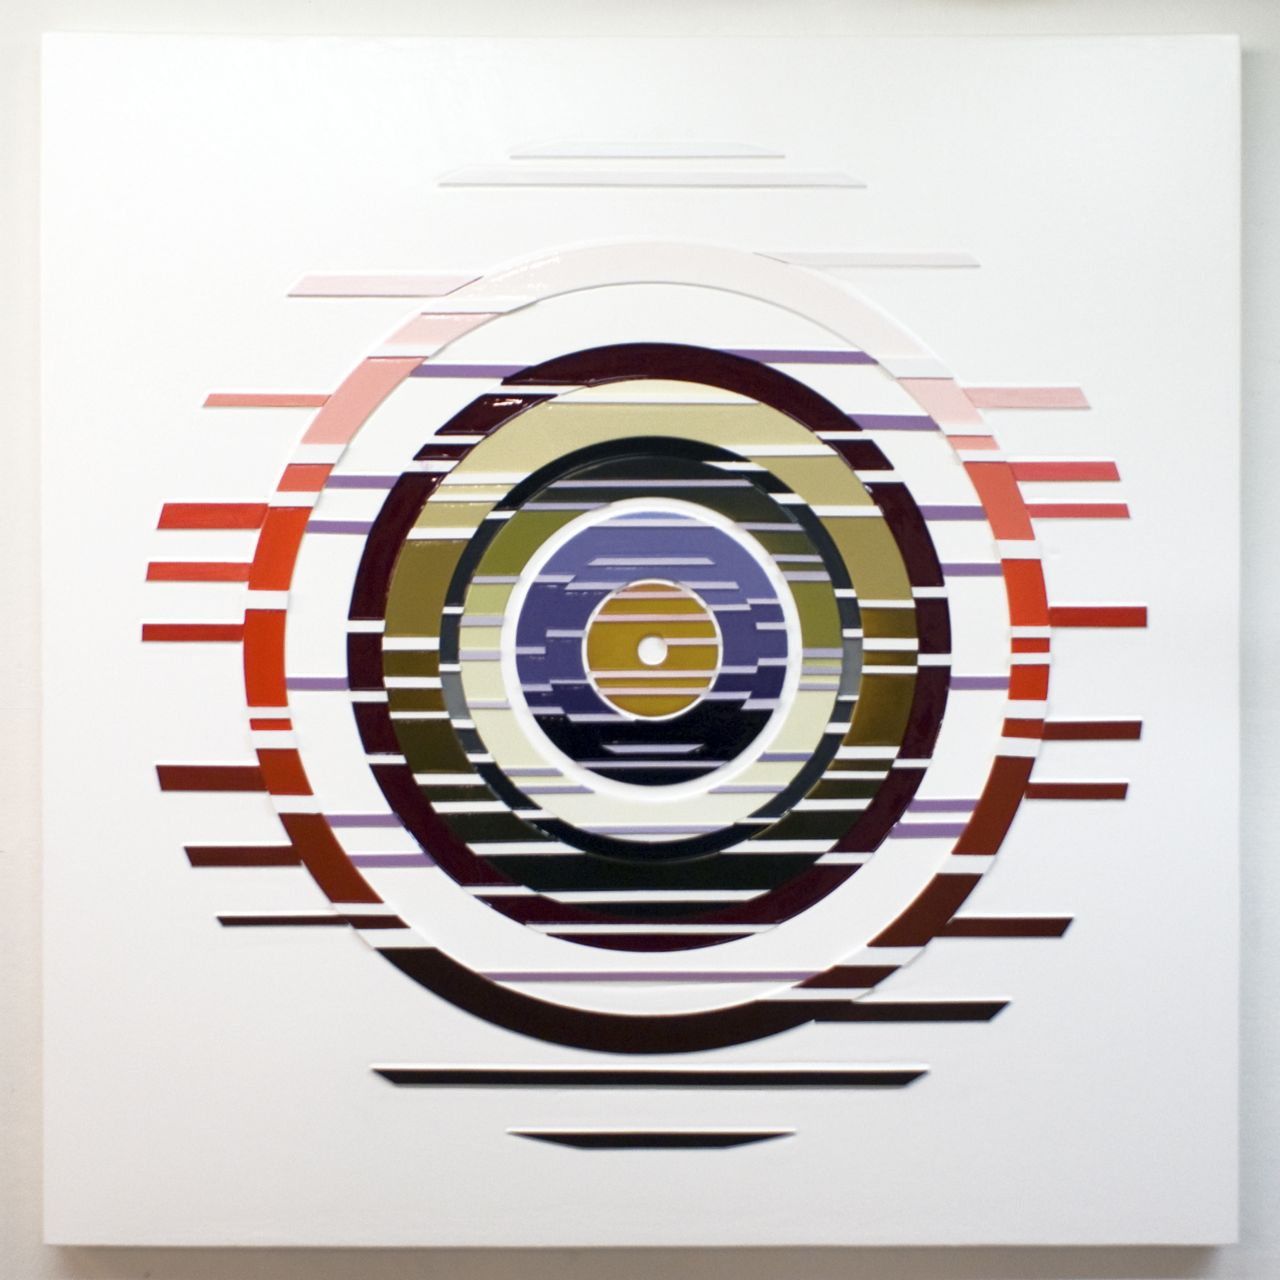 'Supersymmetry' Poured acrylic paint and wood on panel, 60 x 60 in, 2012